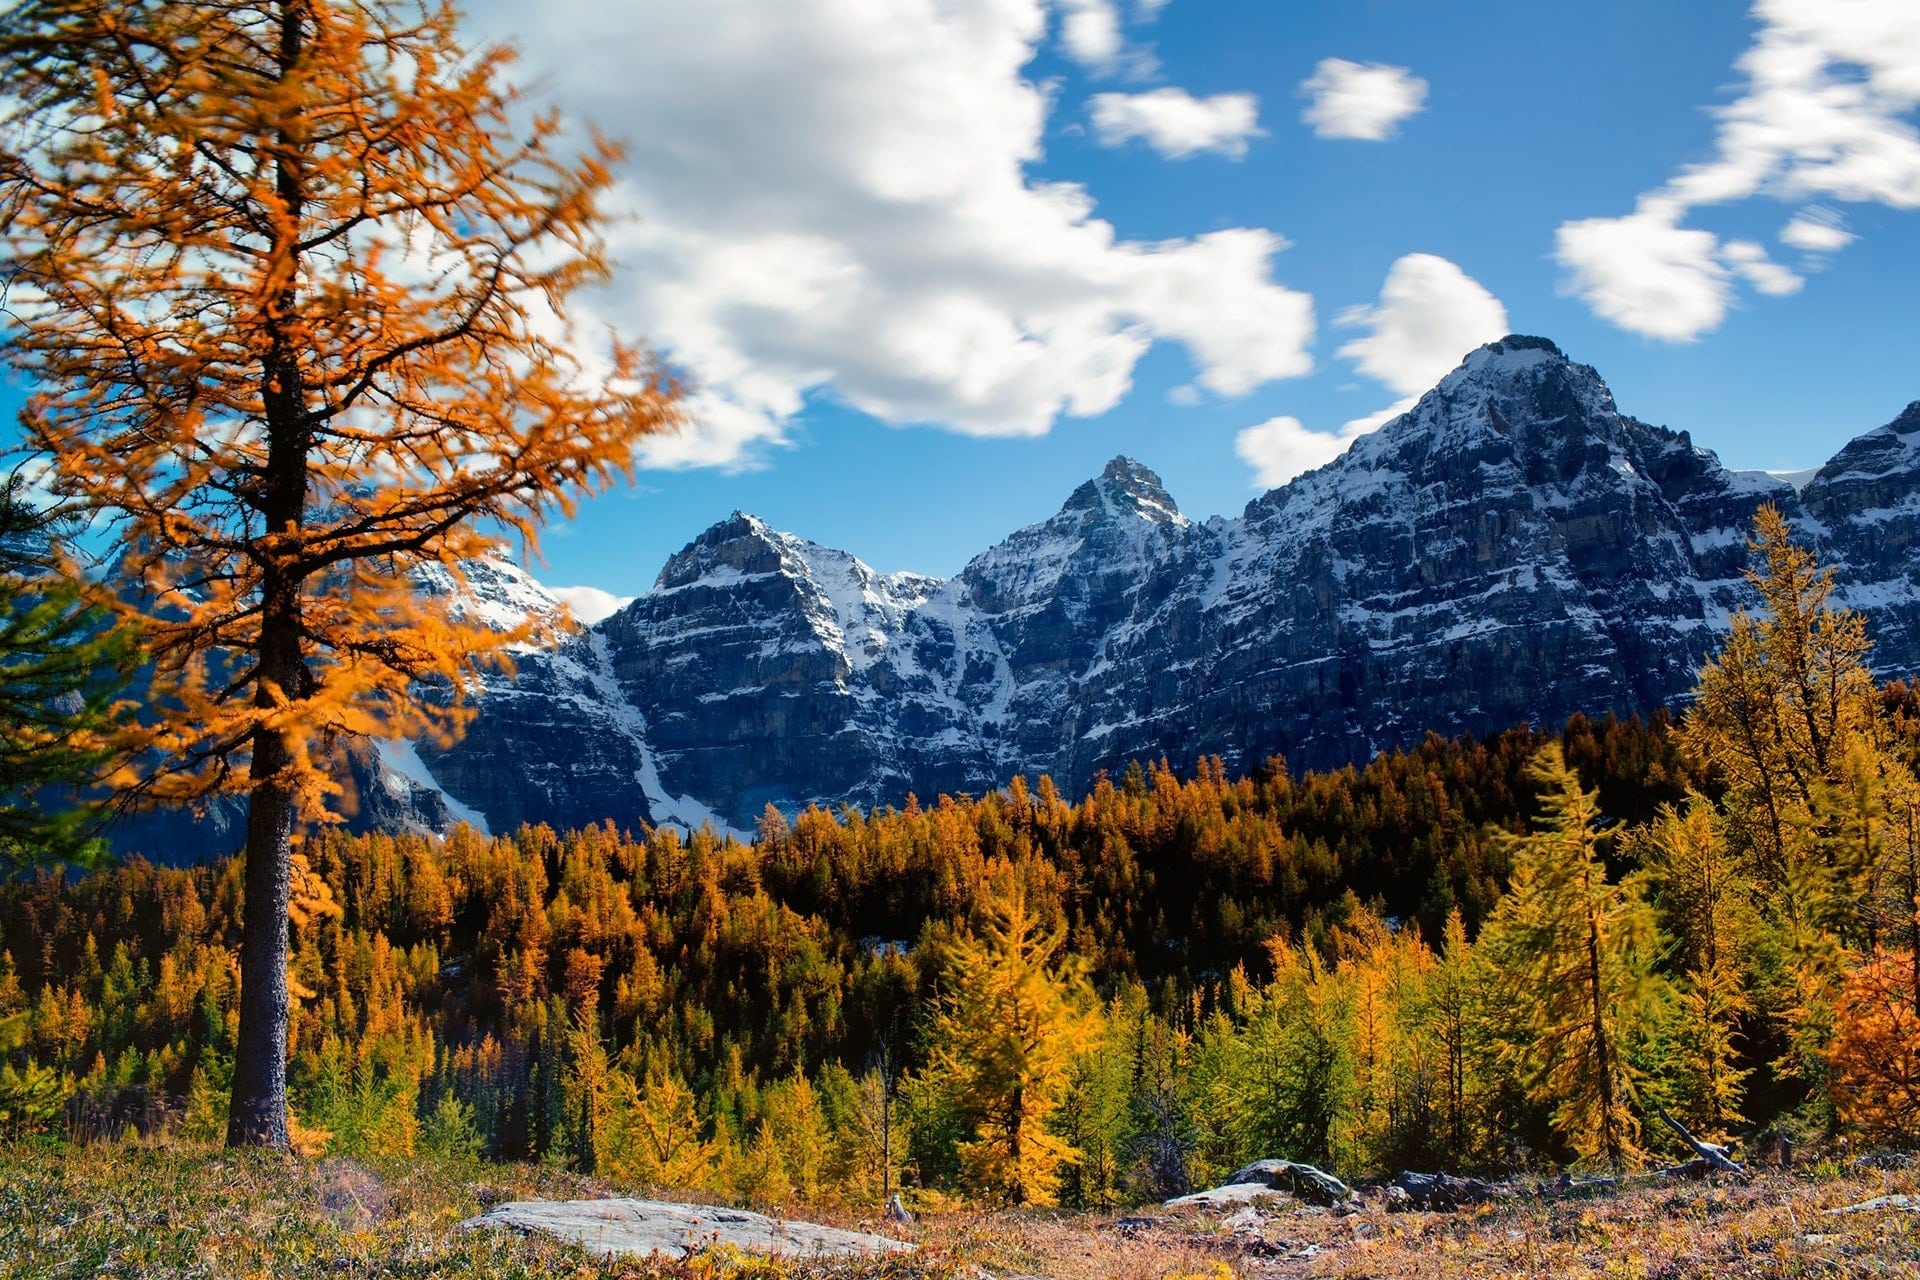 Golden larch trees surrounded by ice-capped mountain peaks at valley of the ten peaks hike